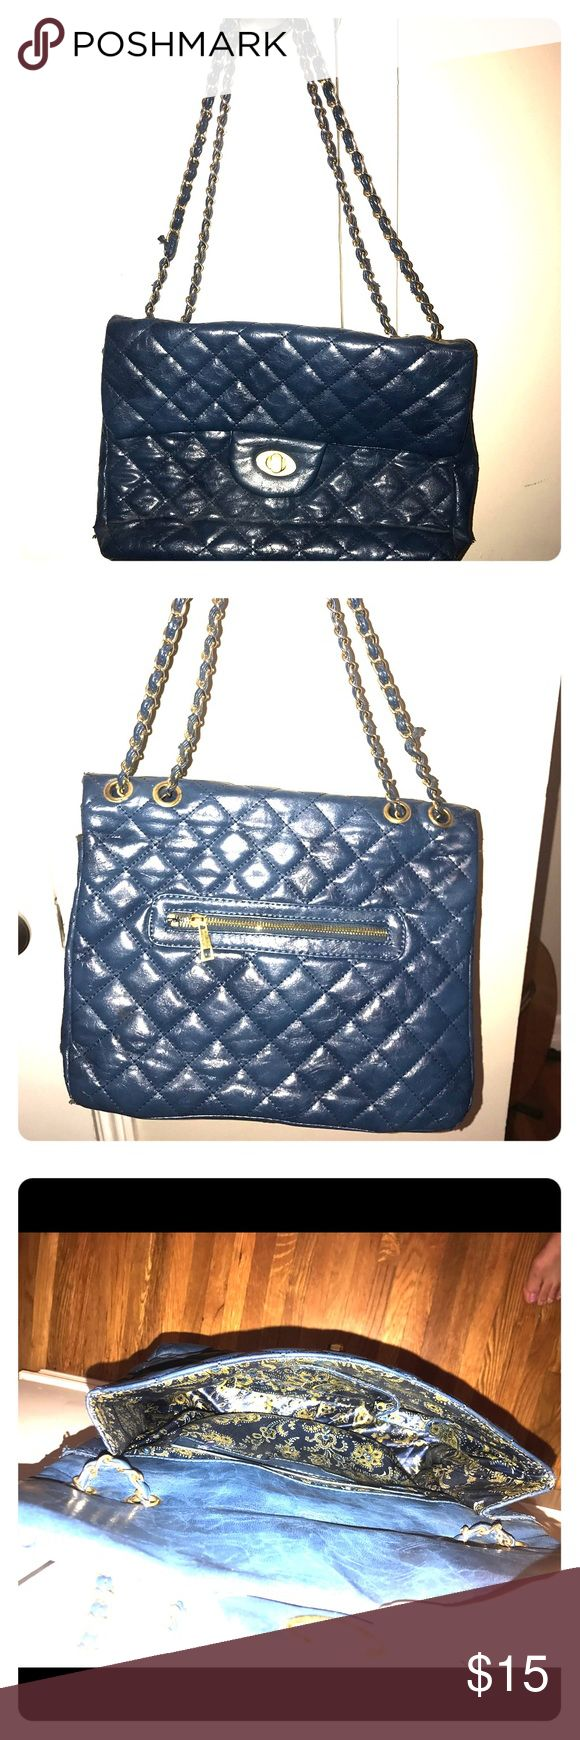 Navy Purse Adorable bag with gold chain strap, very spacious. Bags Shoulder Bags